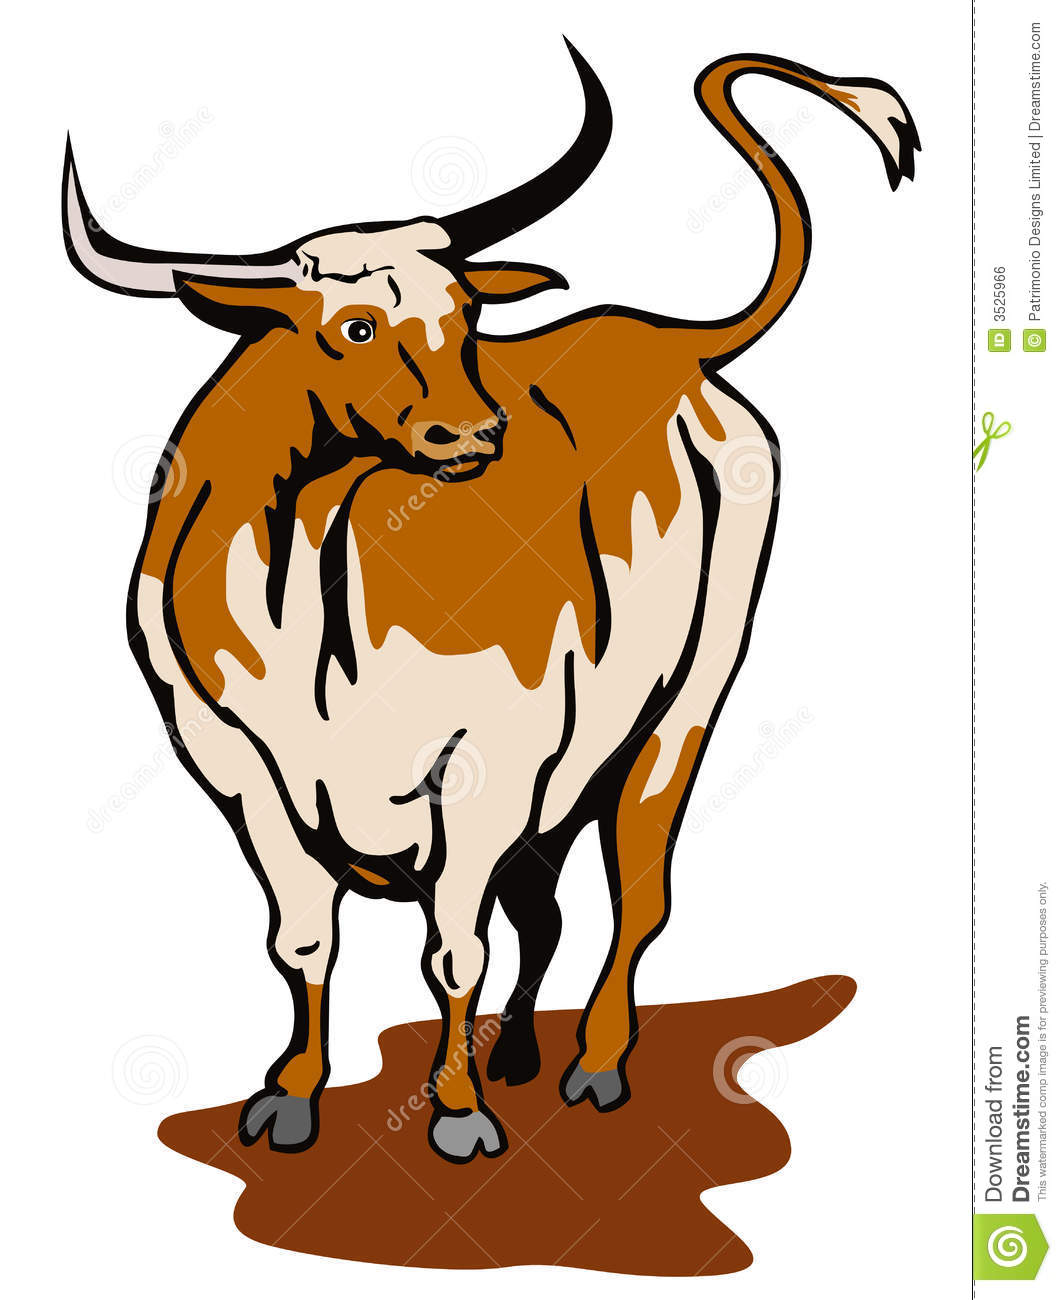 Texas Longhorn Bull Royalty Free Stock Image.